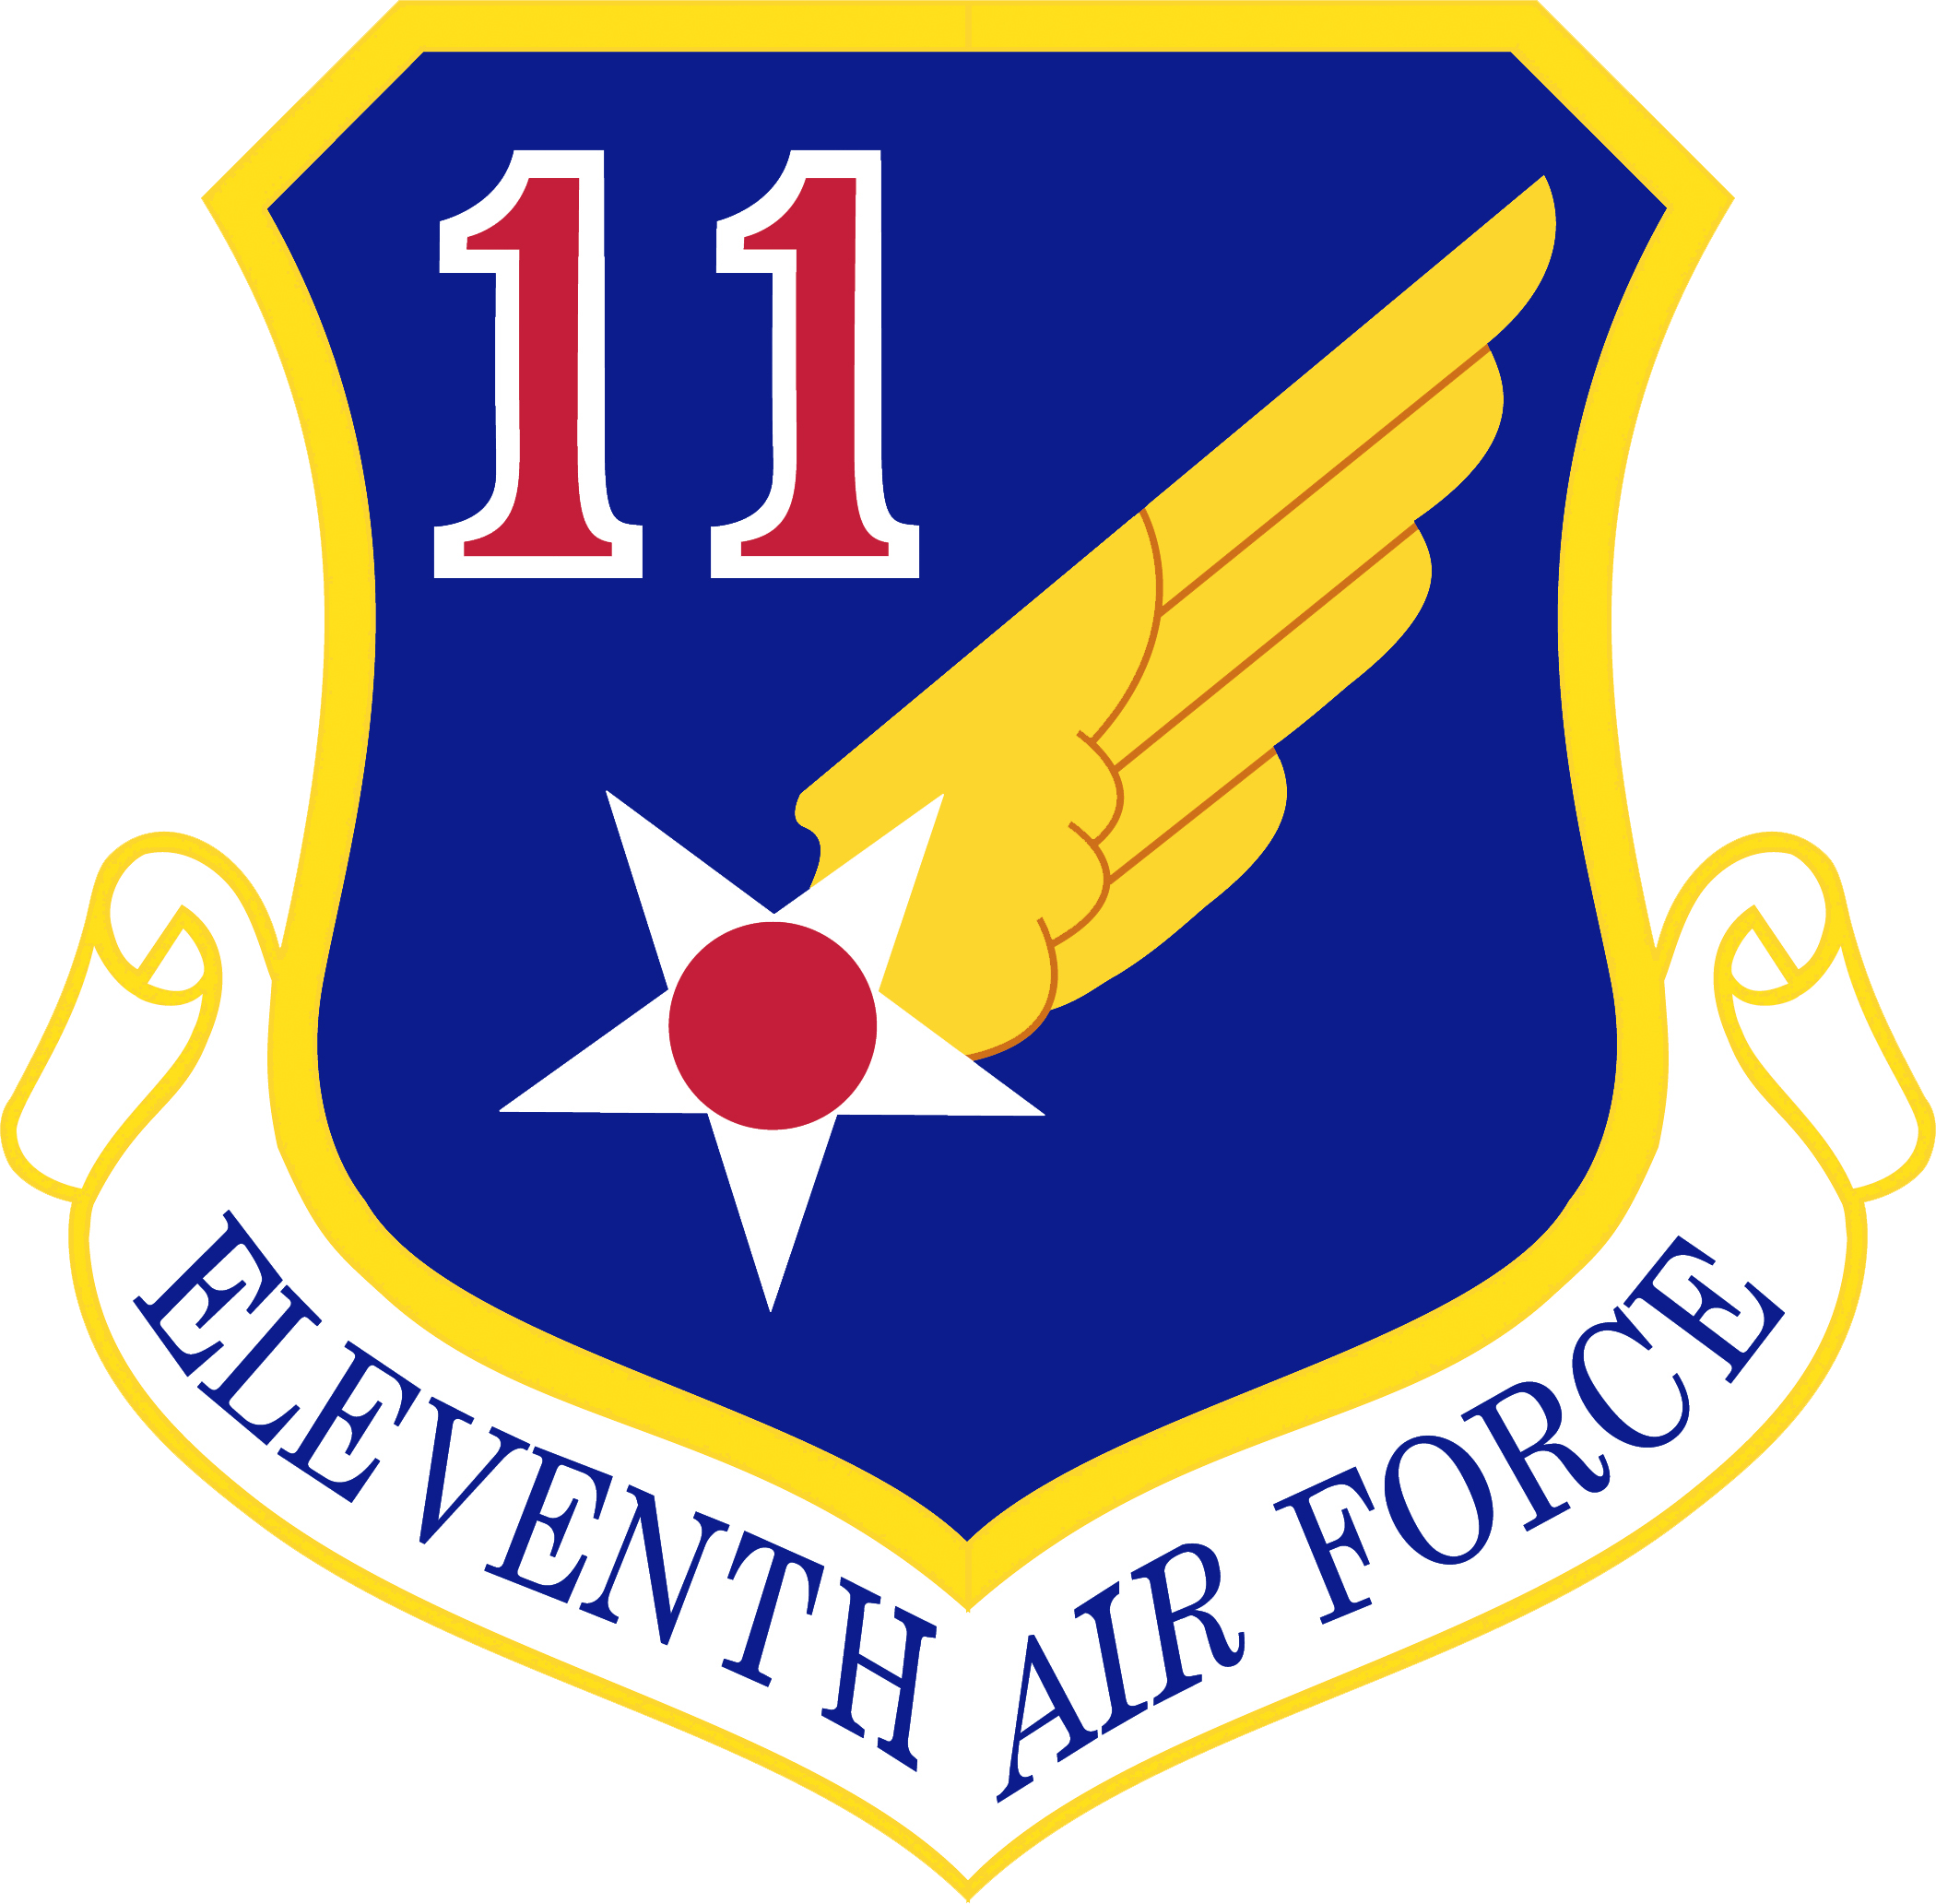 File:Eleventh Air Force - Emblem.png - Wikimedia Commons